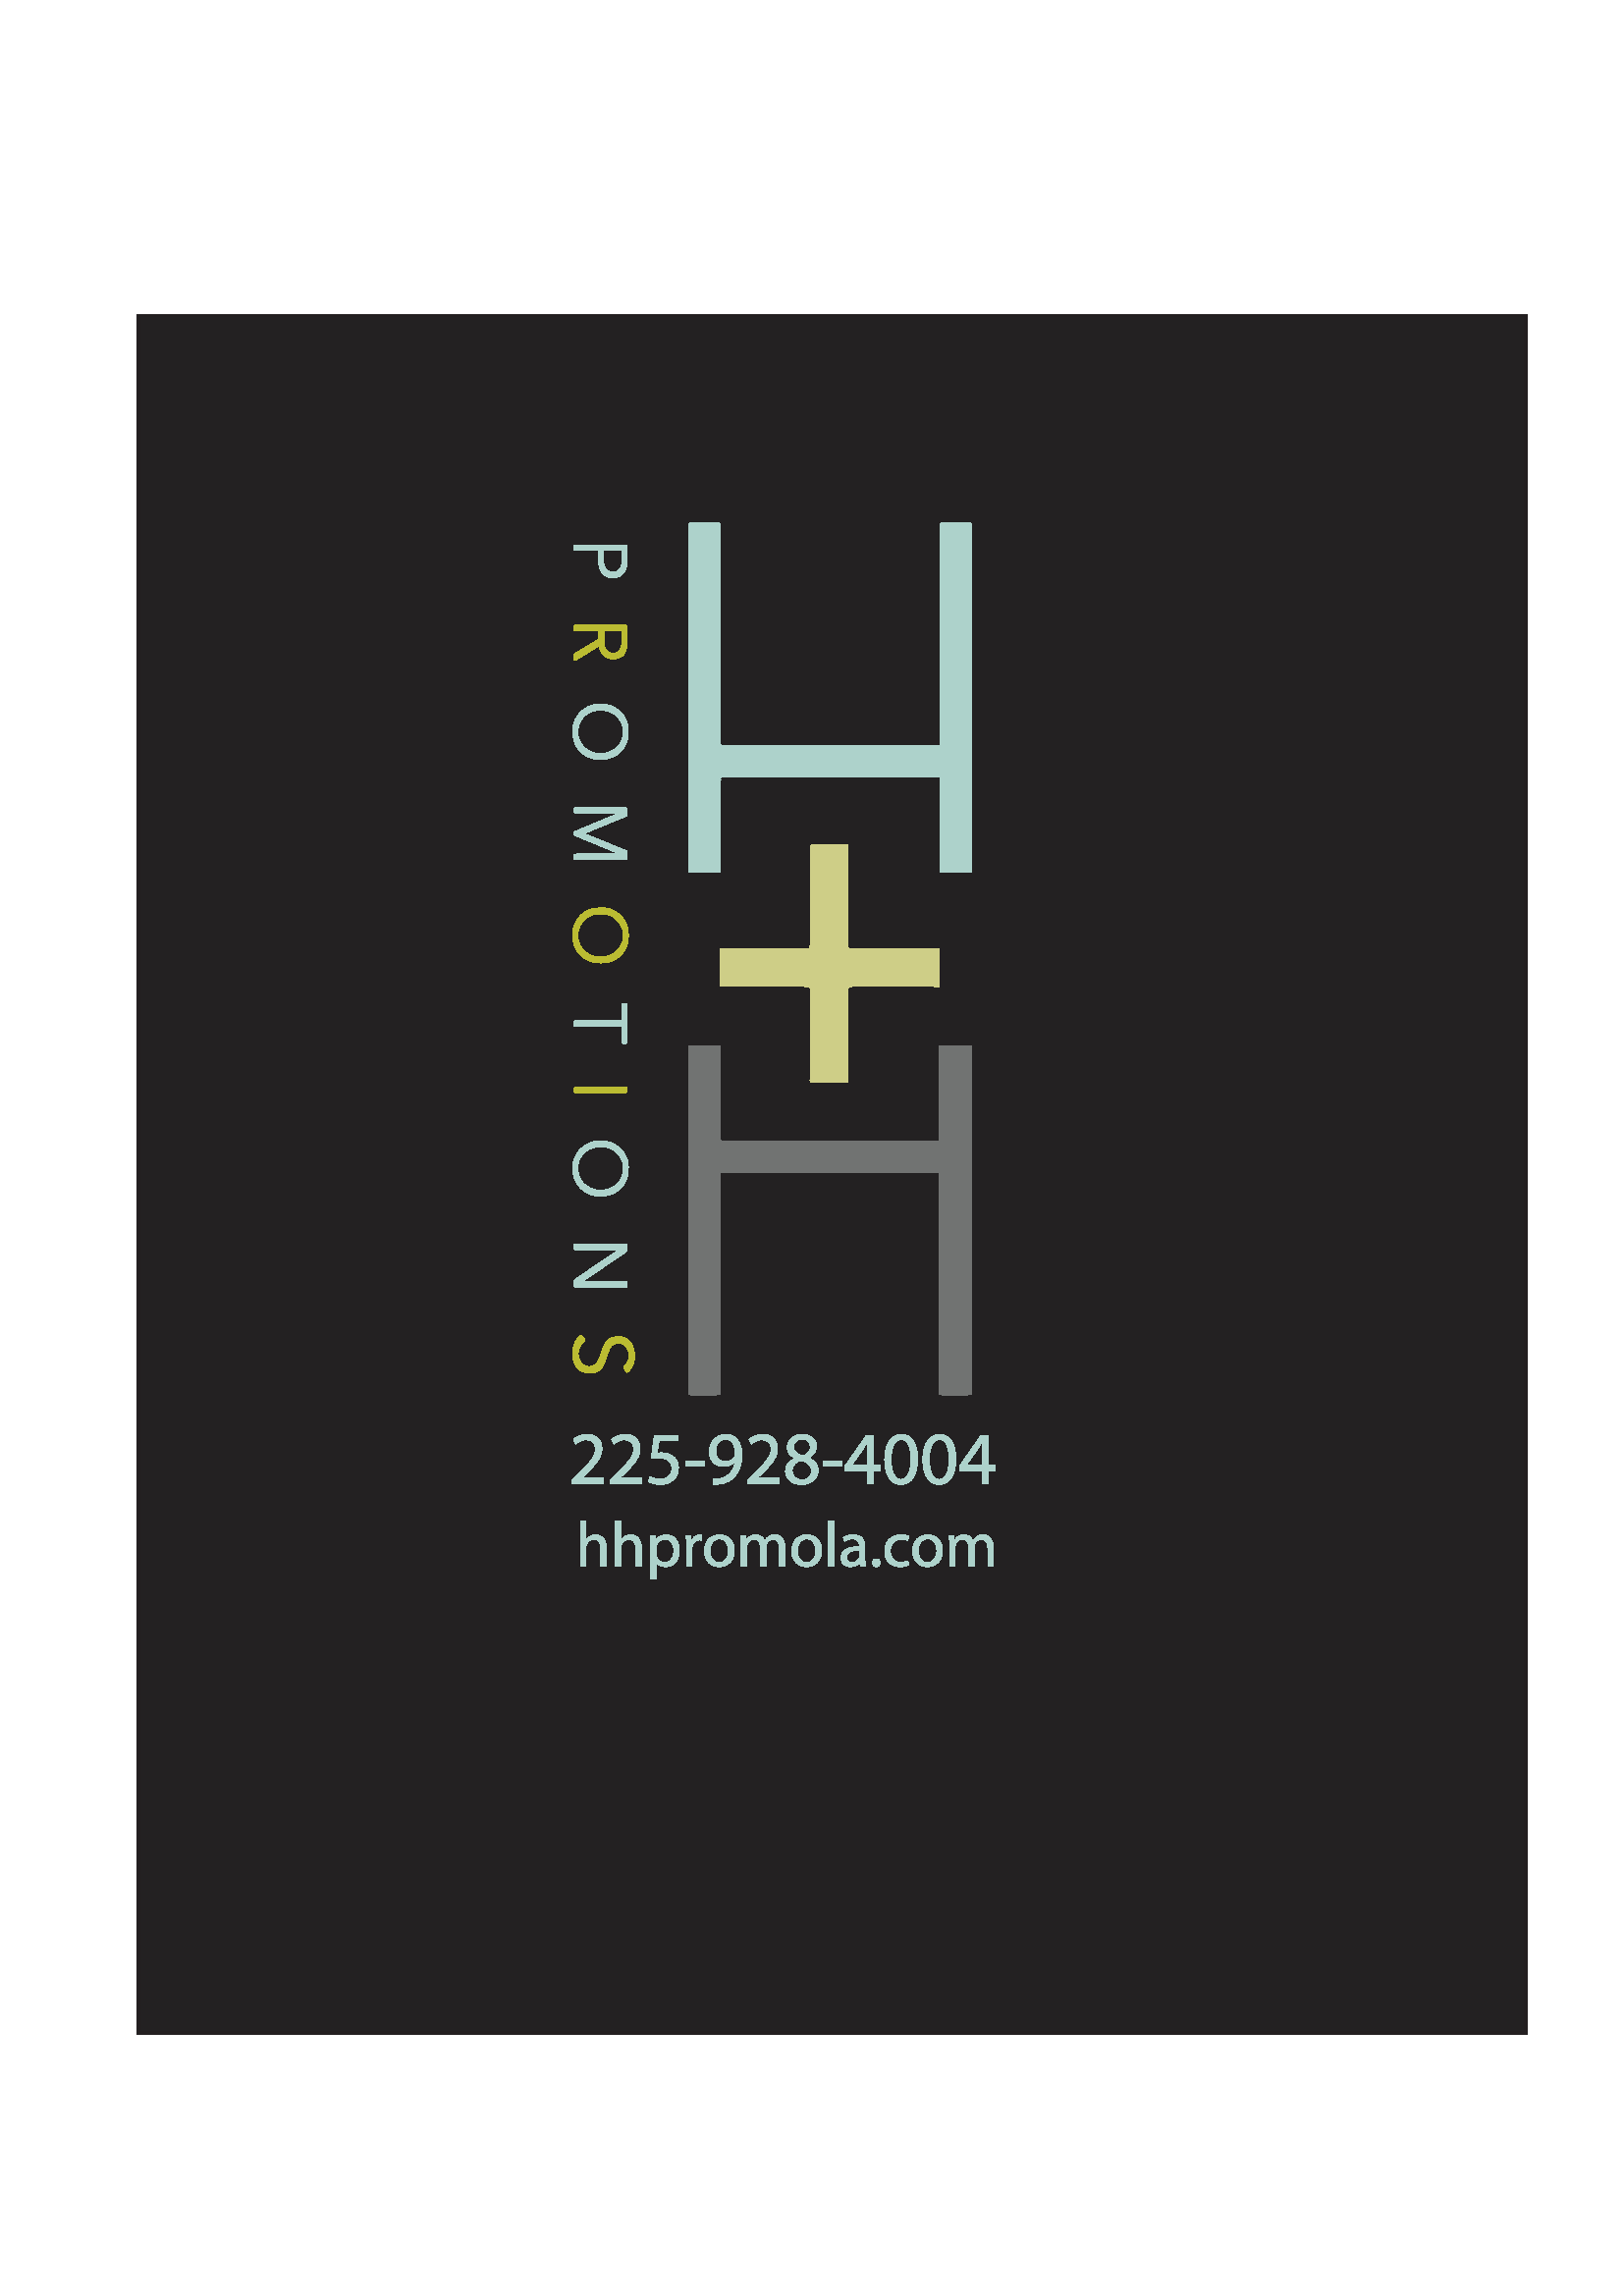 H & H Embroidery & Promotions